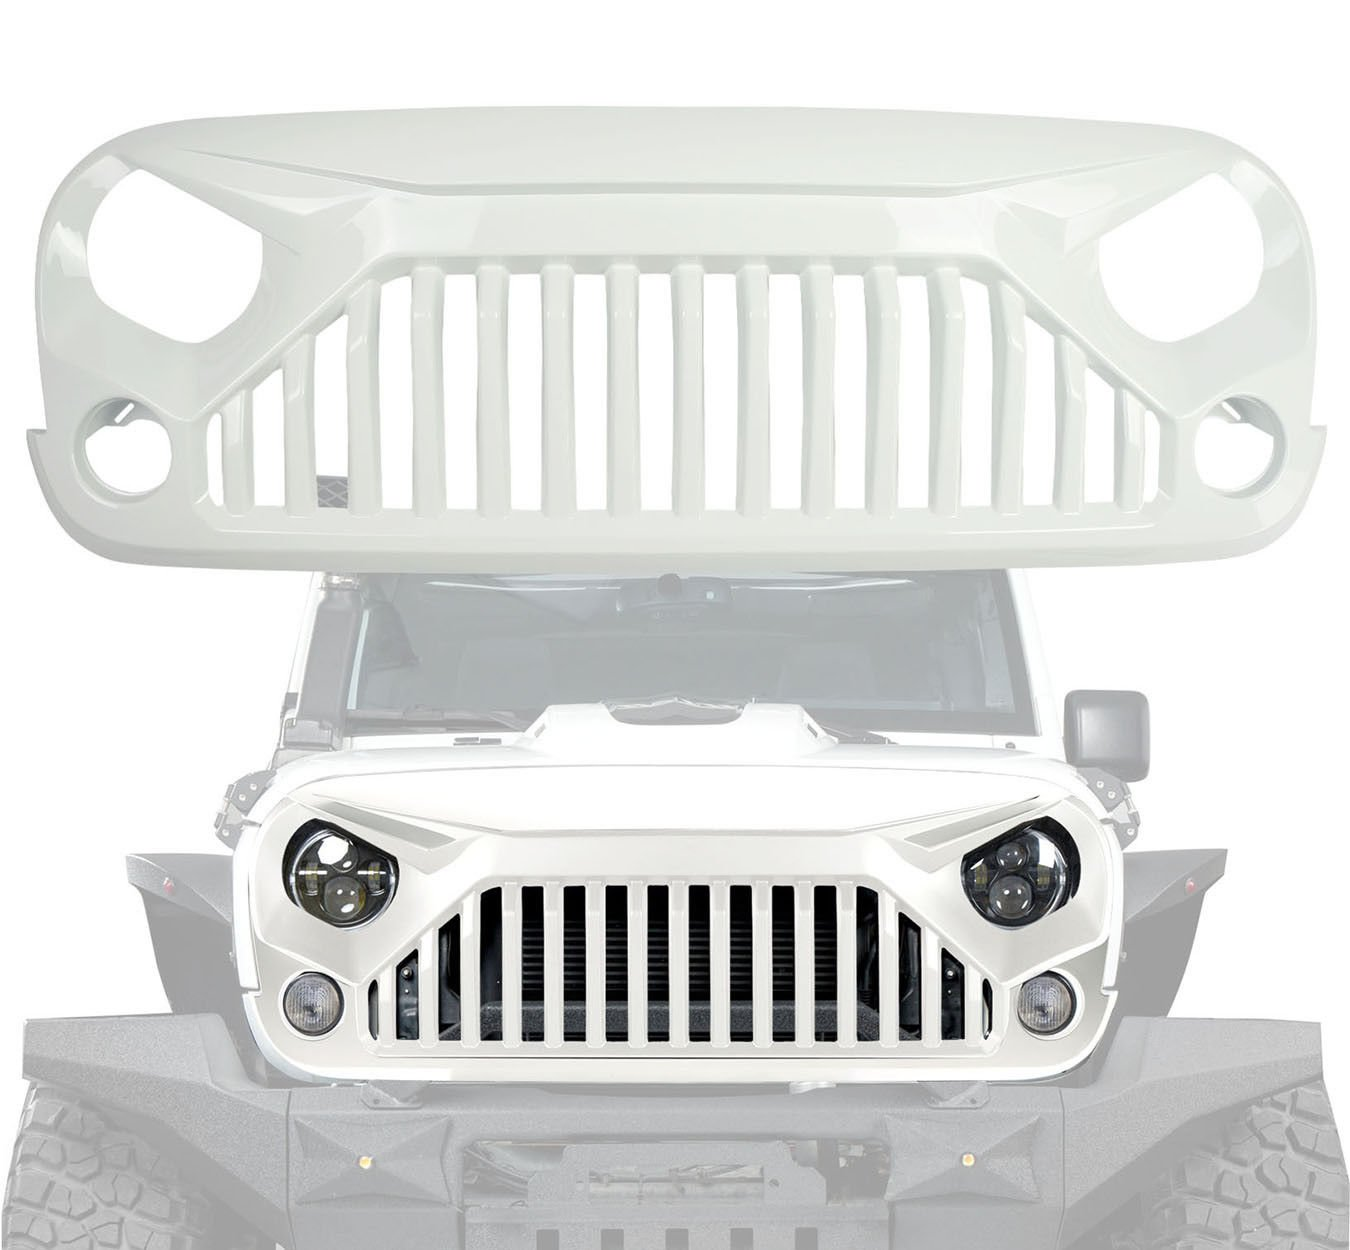 White Gladiator Vader Front Grille Accessories for Jeep Wrangler 2007-2017 Rubicon Sahara Sport JK JKU 4x4Force